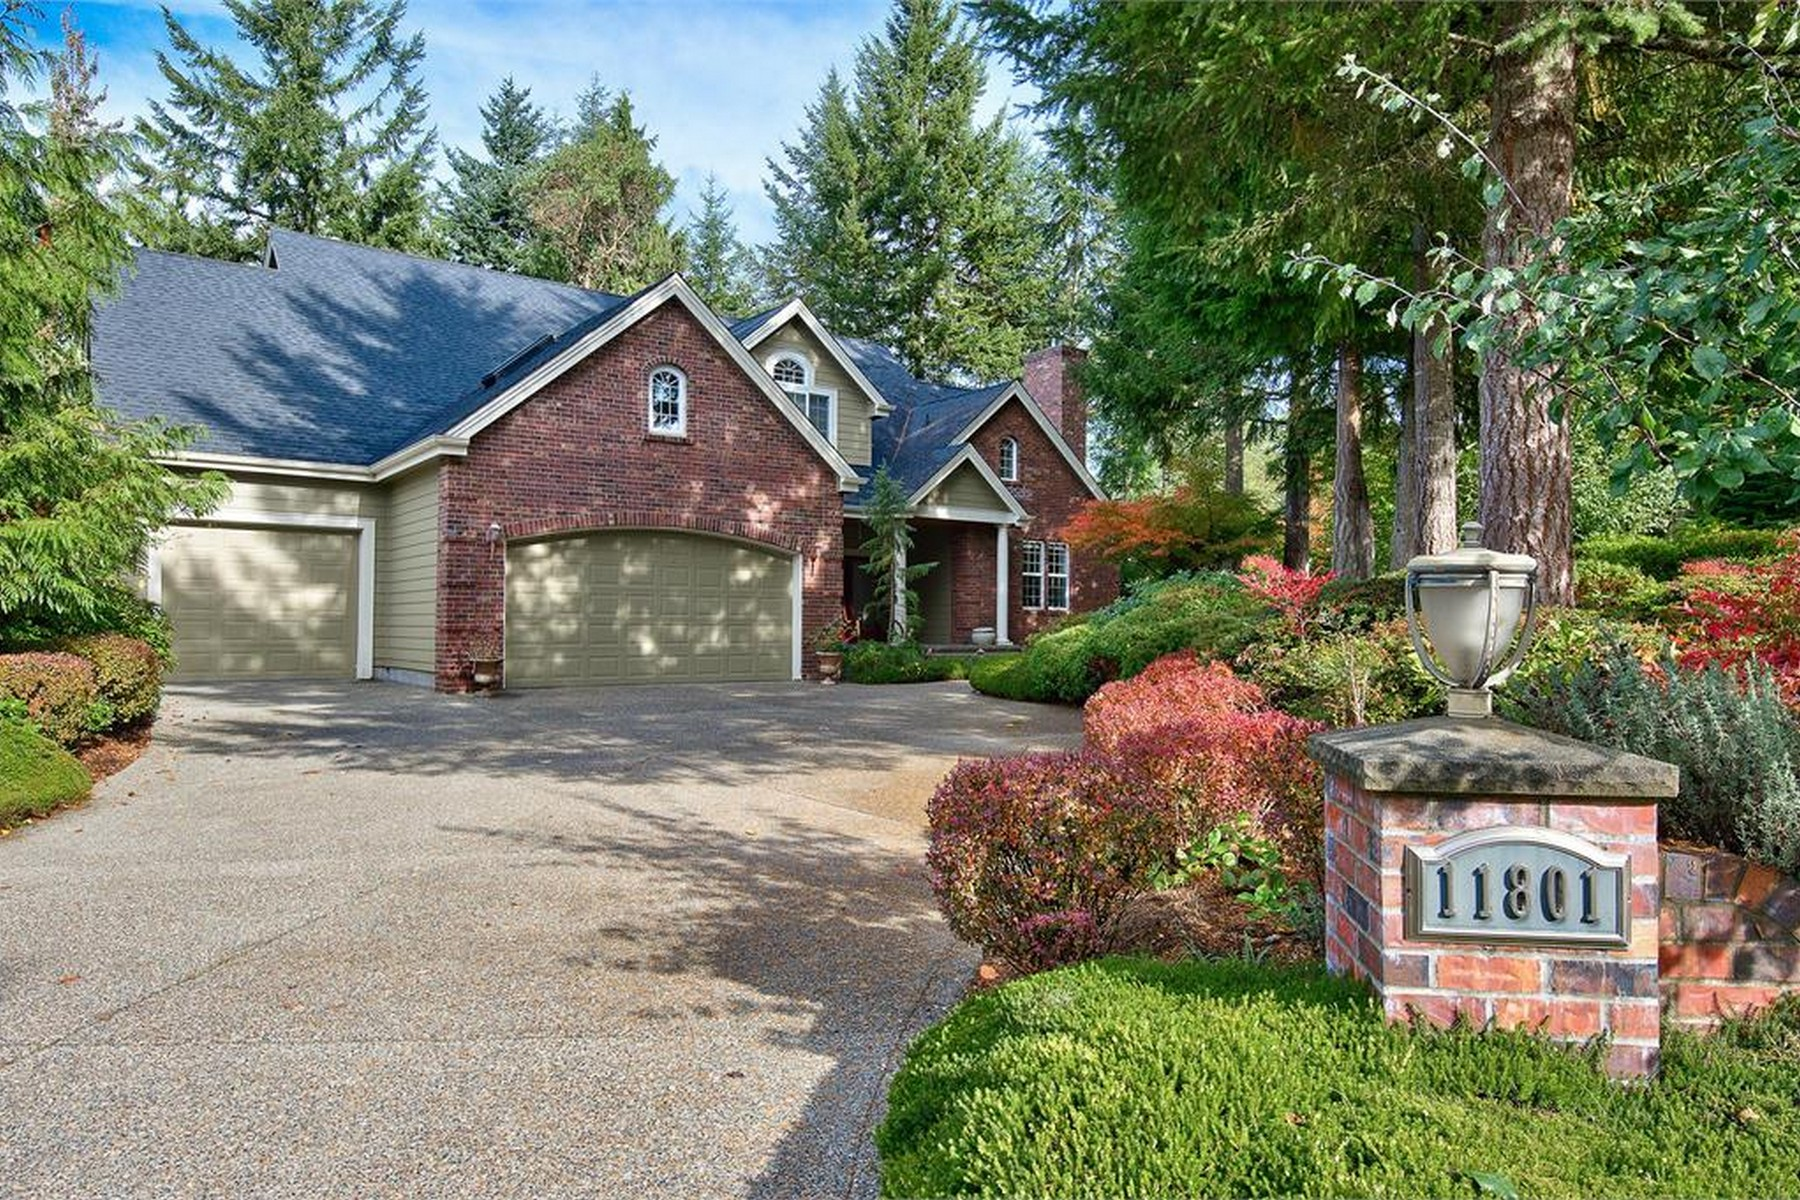 Single Family Home for Sale at Stunning Canterwood Estate 11801 Sorrel Run NW Gig Harbor, Washington, 98332 United States